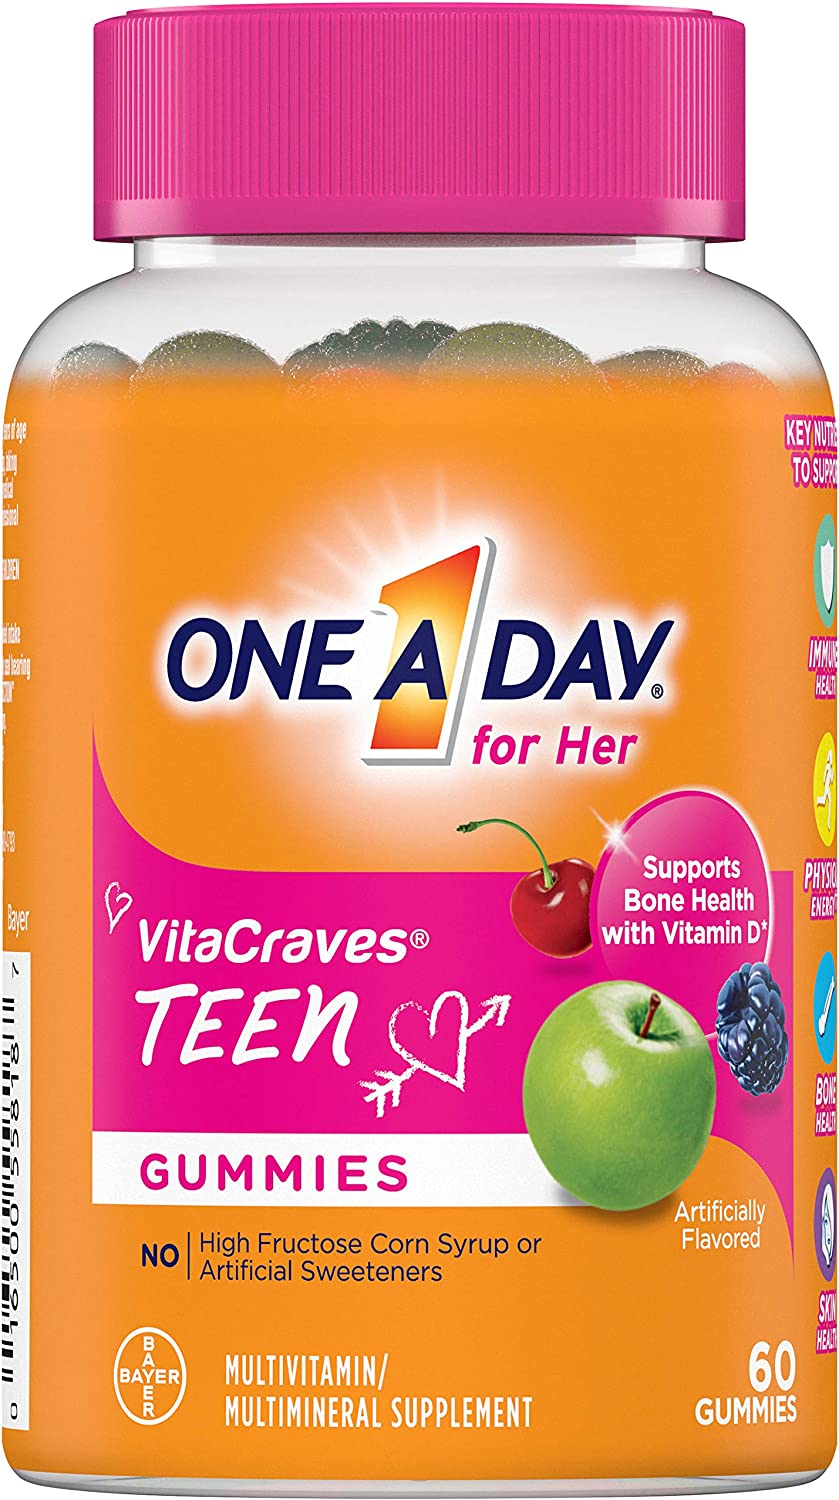 Amazon.com: One A Day Teen for Her Multivitamin Gummies, Supplement with Vitamin A, Vitamin C, Vitamin D, Vitamin E and Zinc for Immune Health Support* & more, 60 Count: Health & Personal